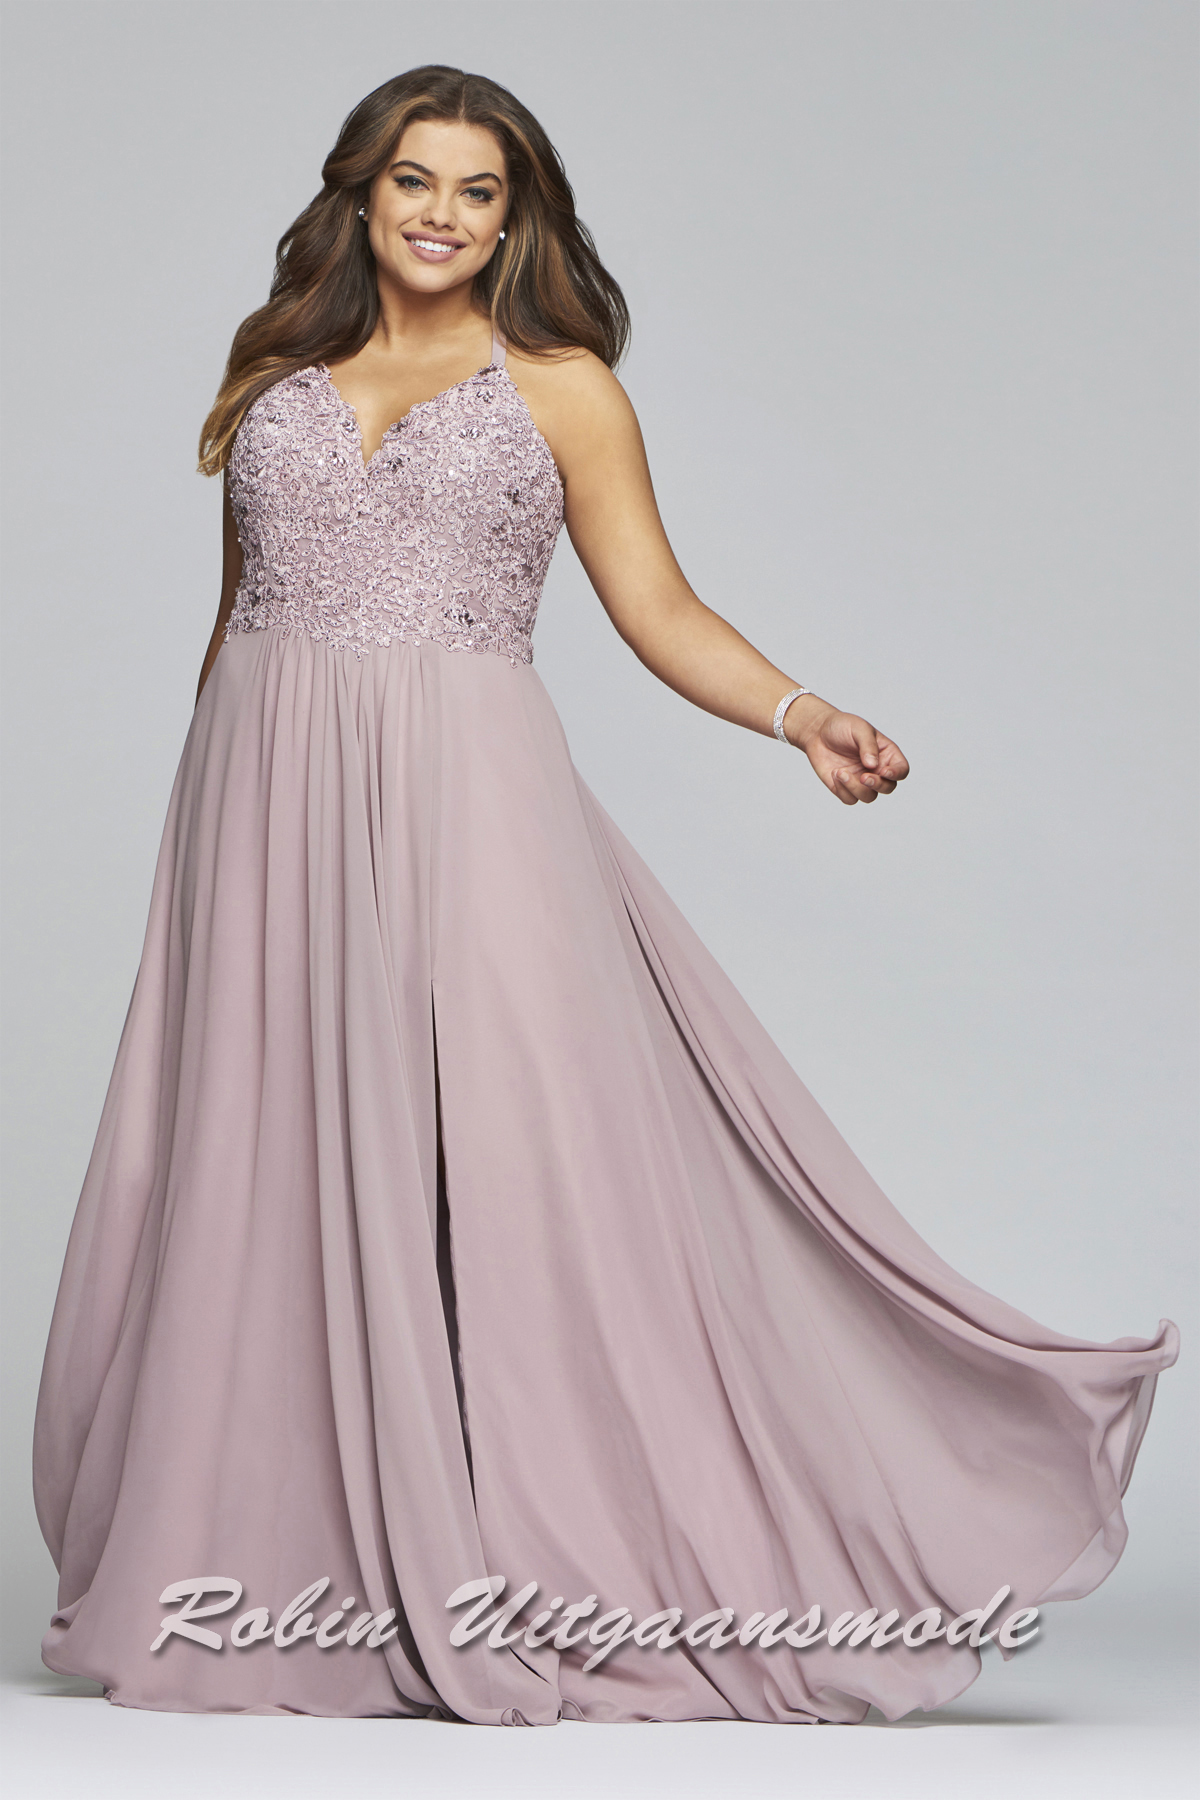 176bb2764cdf Prom dresses in large sizes with lace bodice and chiffon skirt in mauve |  modelnr g